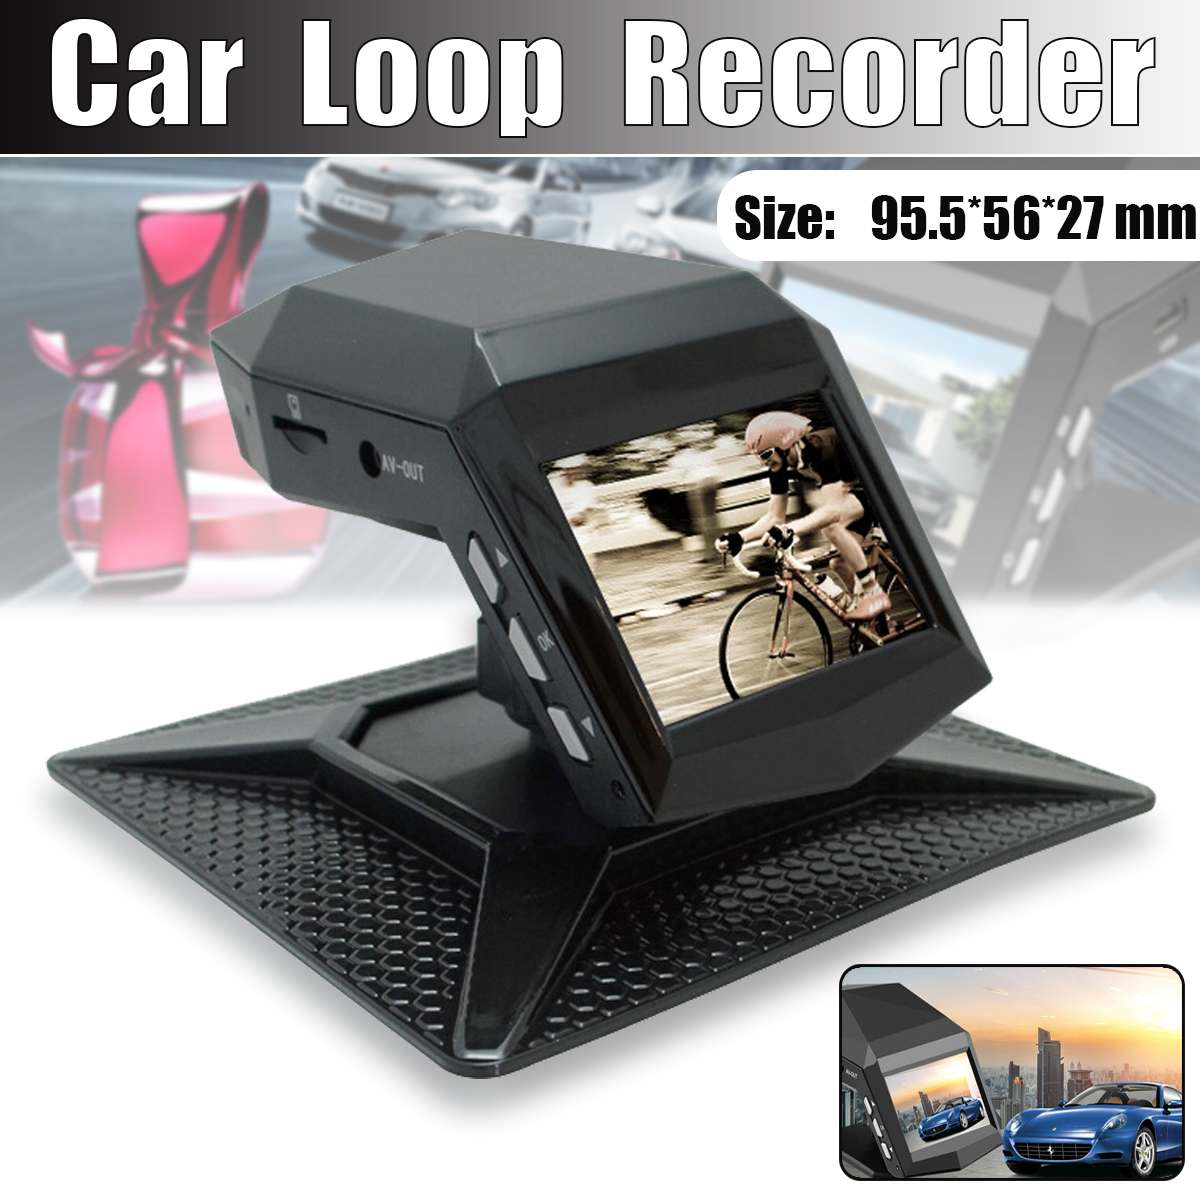 1080p Car DVRS Dash Cam The Central Console Does Not Install Perfume Traffic Recorder Night Vision Car Video Recorder